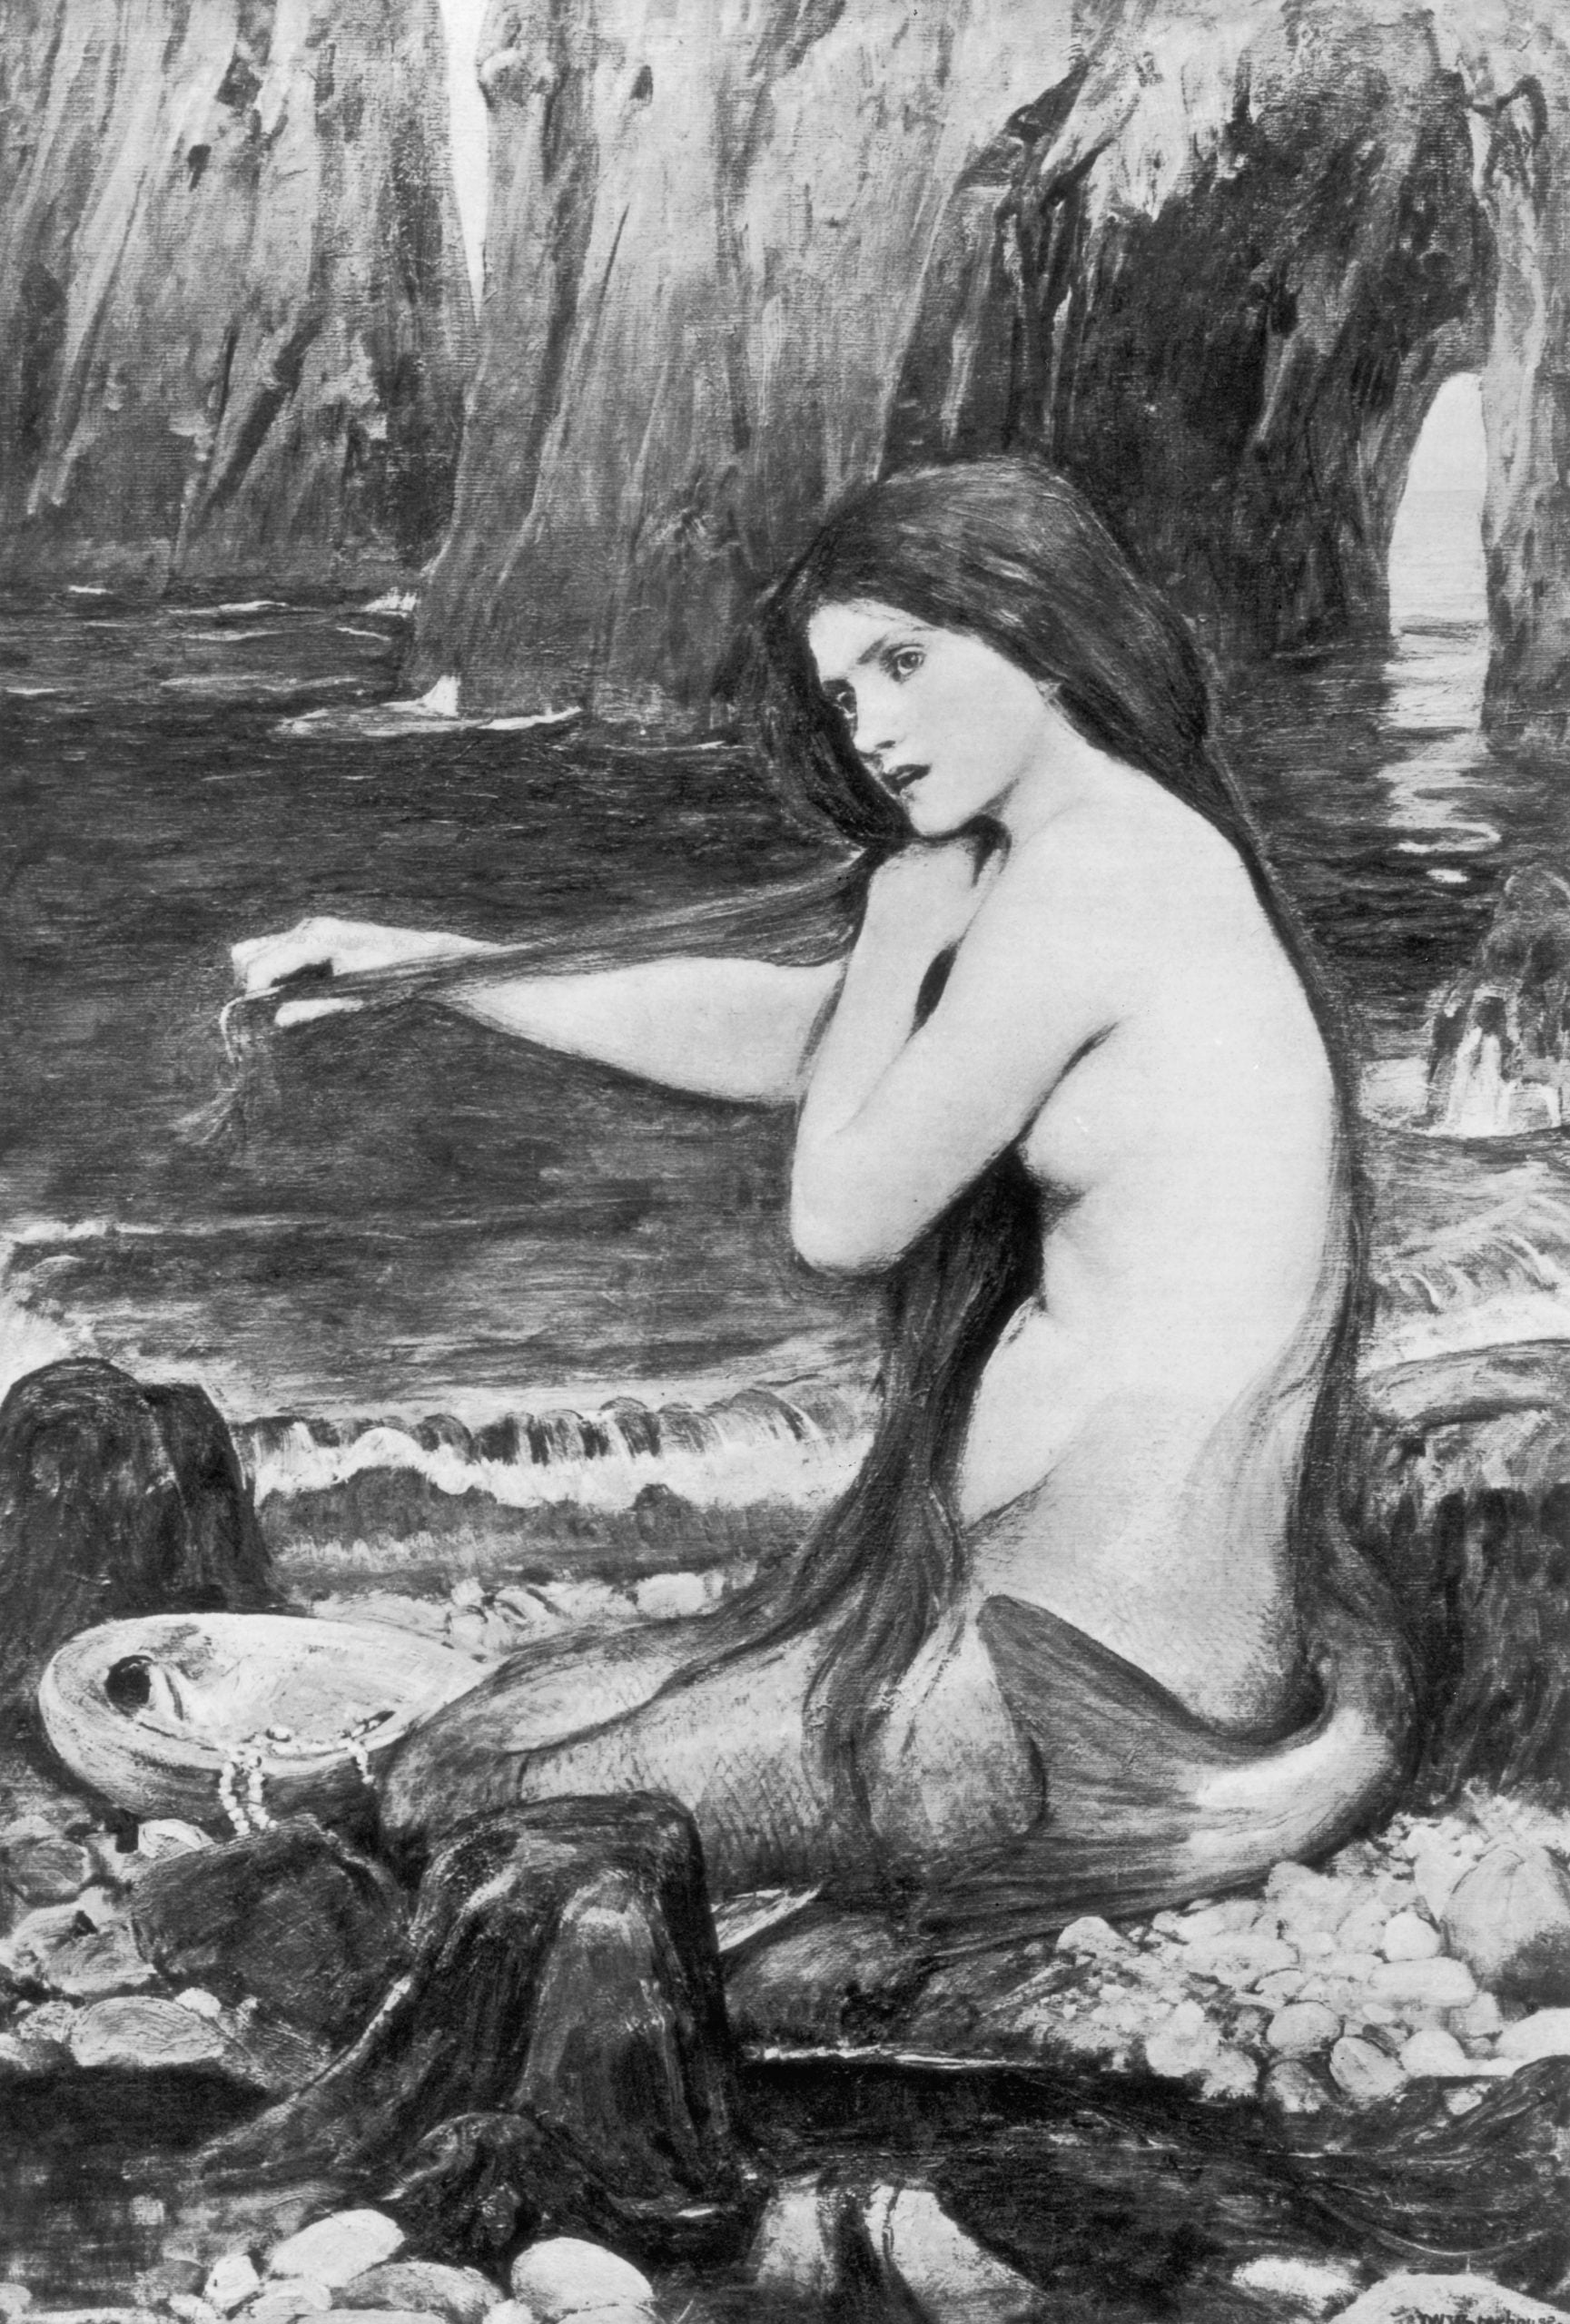 The Lighthouse and the male fantasy of the mermaid